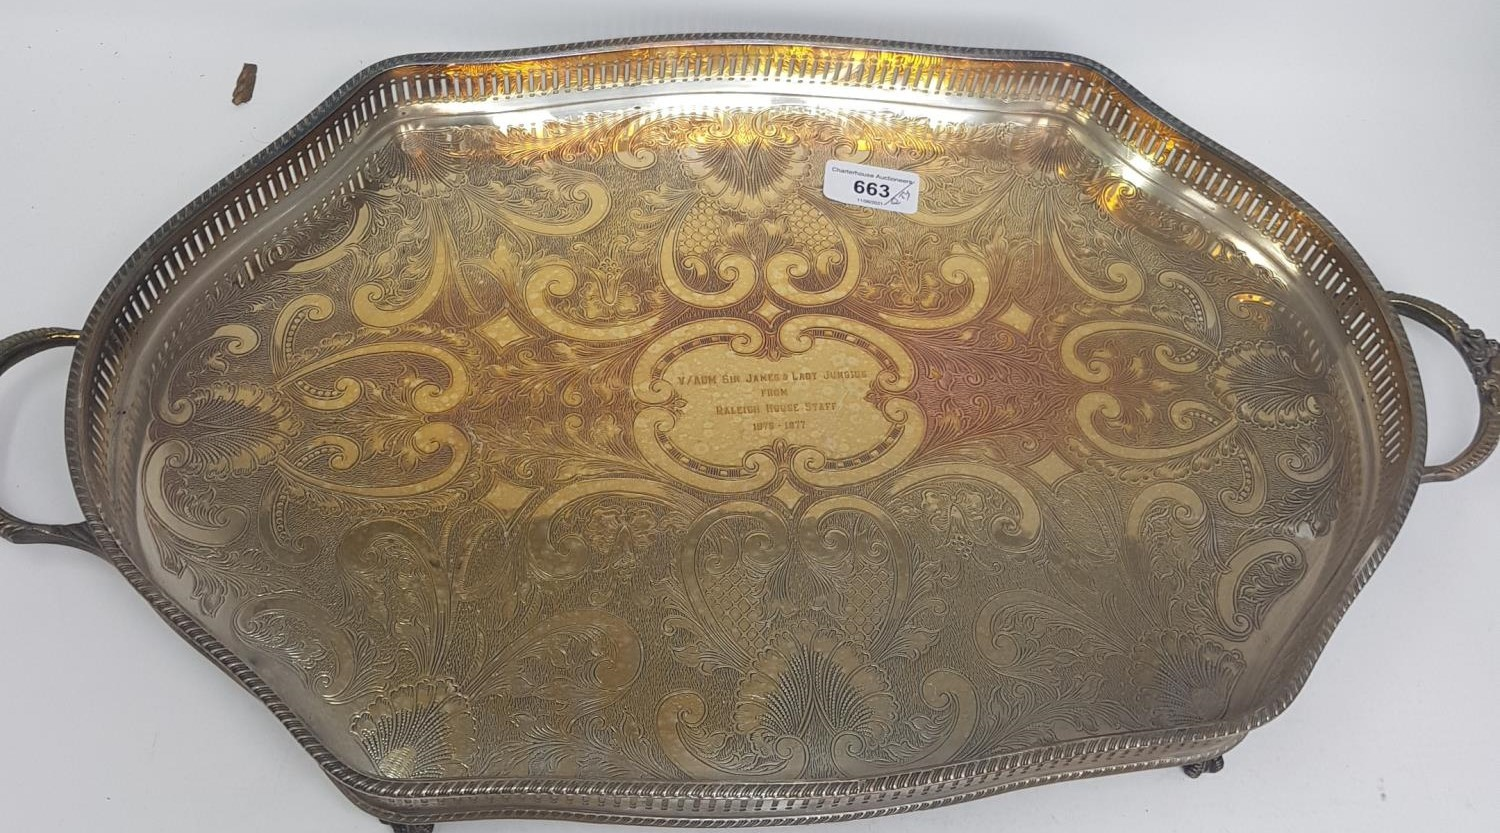 A silver plated tray, other silver plate and metalwares (box) - Image 2 of 2